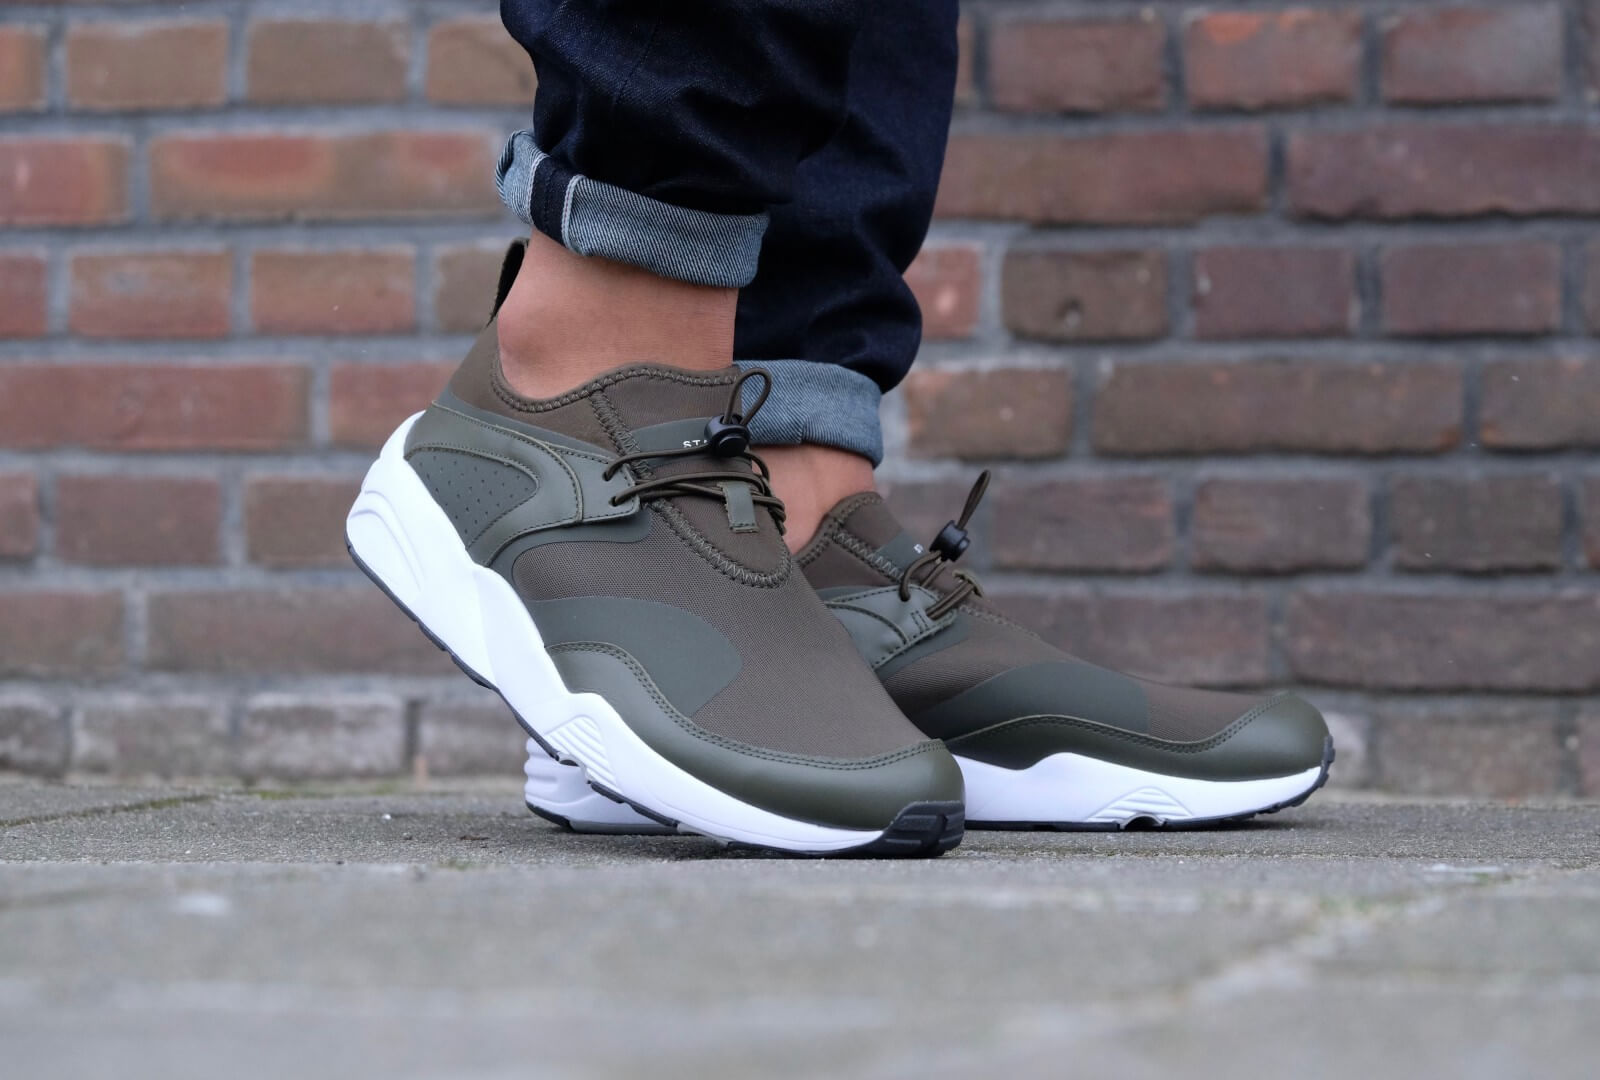 Puma Blaze of Glory NU x Stampd Forest Night Puma White 361493 01